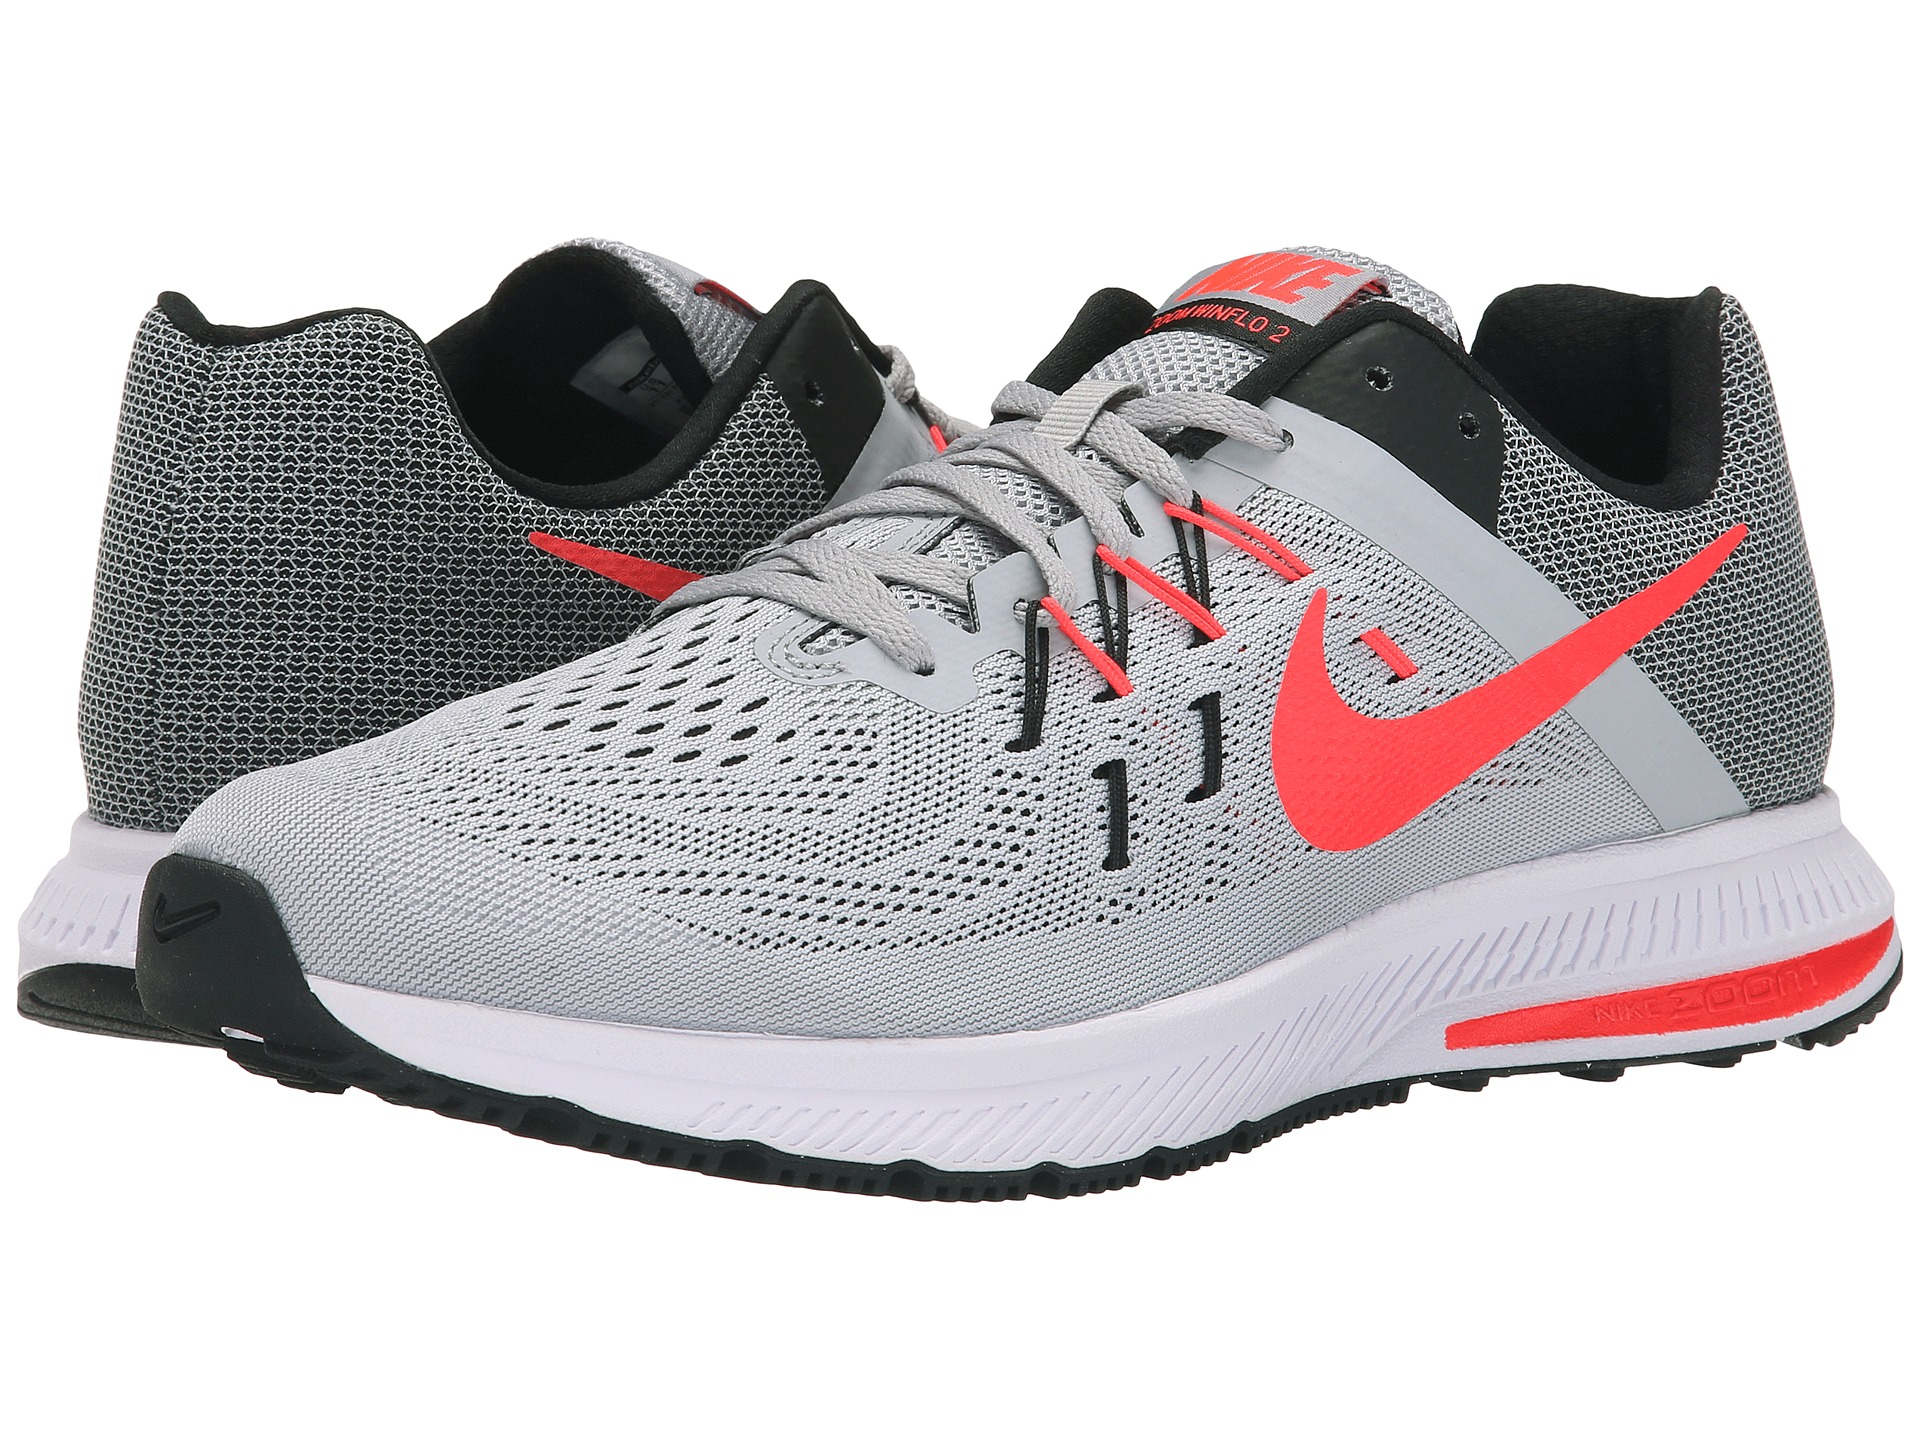 ... peach pink grey women running shoes sneakers 7164a c62e1 promo code for nike  zoom winflo 3 wolf grey 93141 a44a9 ... 25bc937dd